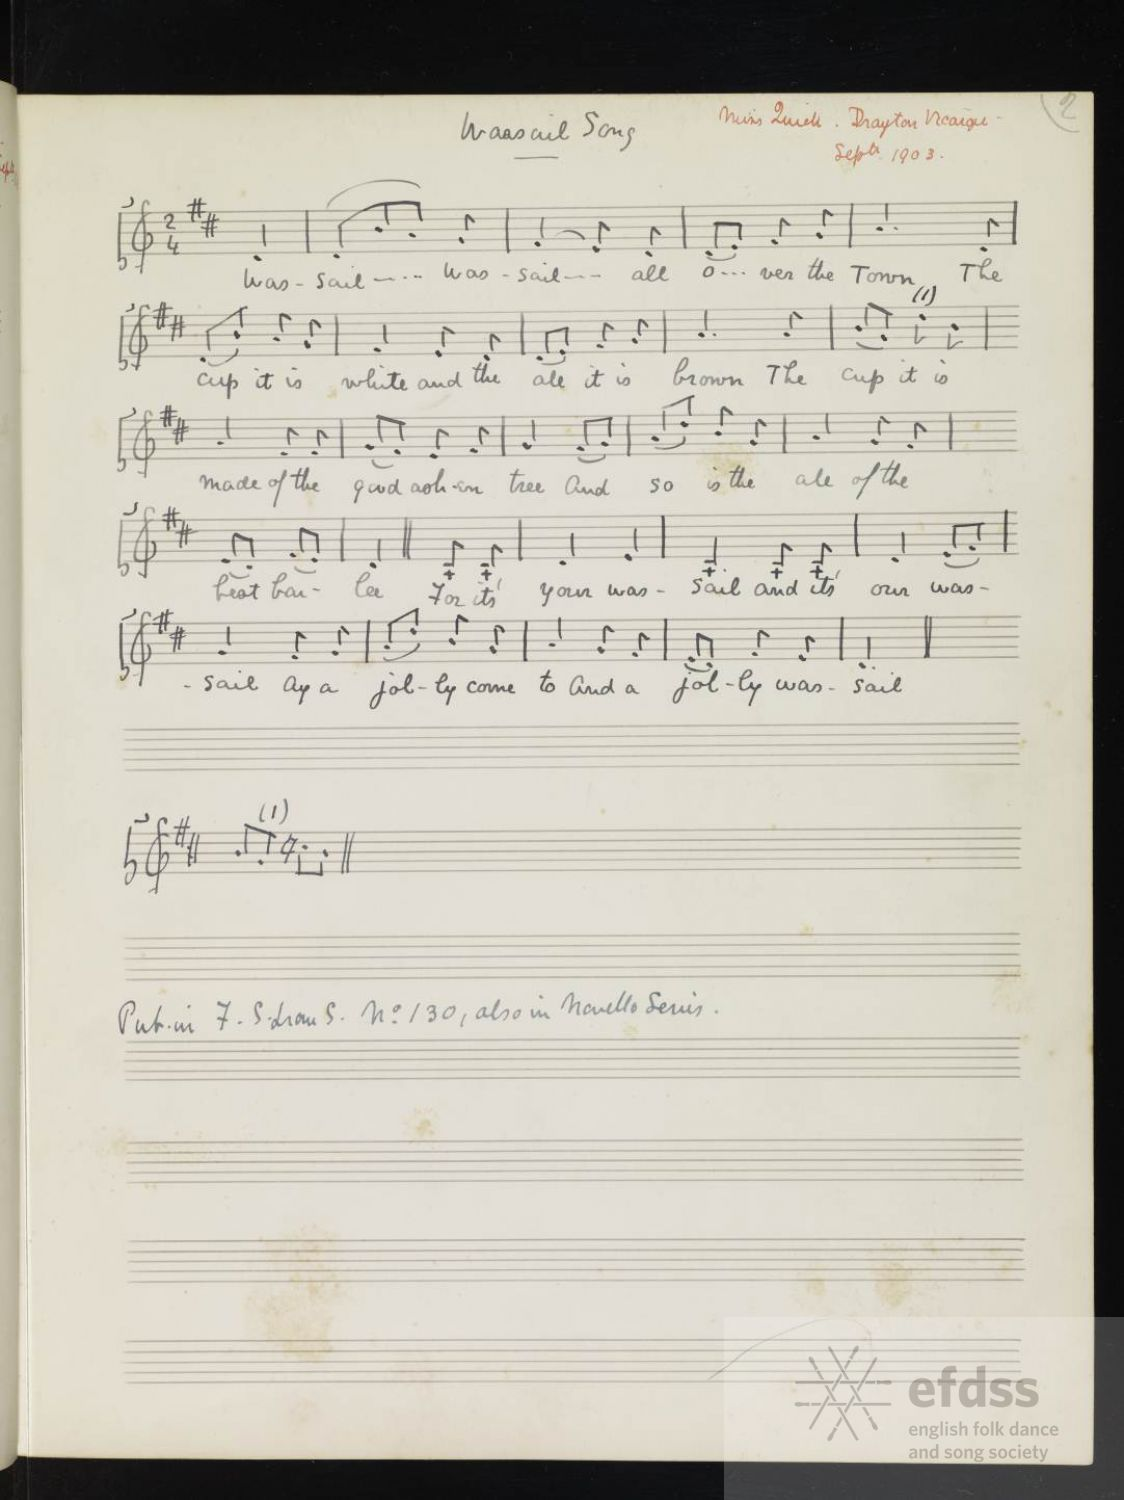 Wassail Song, noted by Cecil Sharp from Miss Quick, Drayton, Somerset. From the Full English archive.